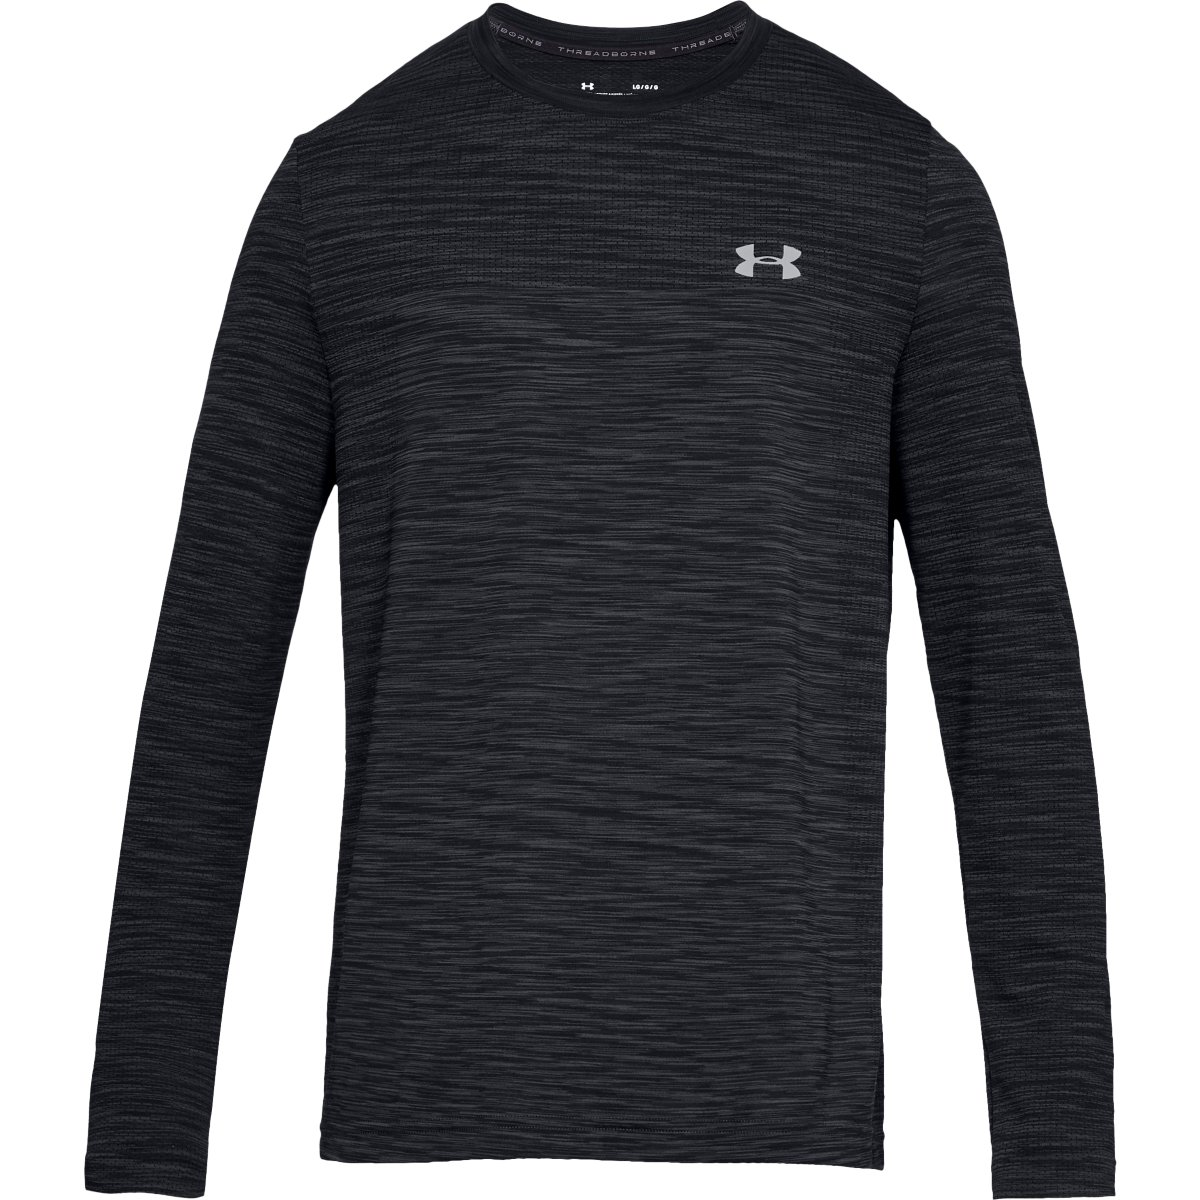 Under Armour Vanish Seamless Long Sleeve Top | Amour